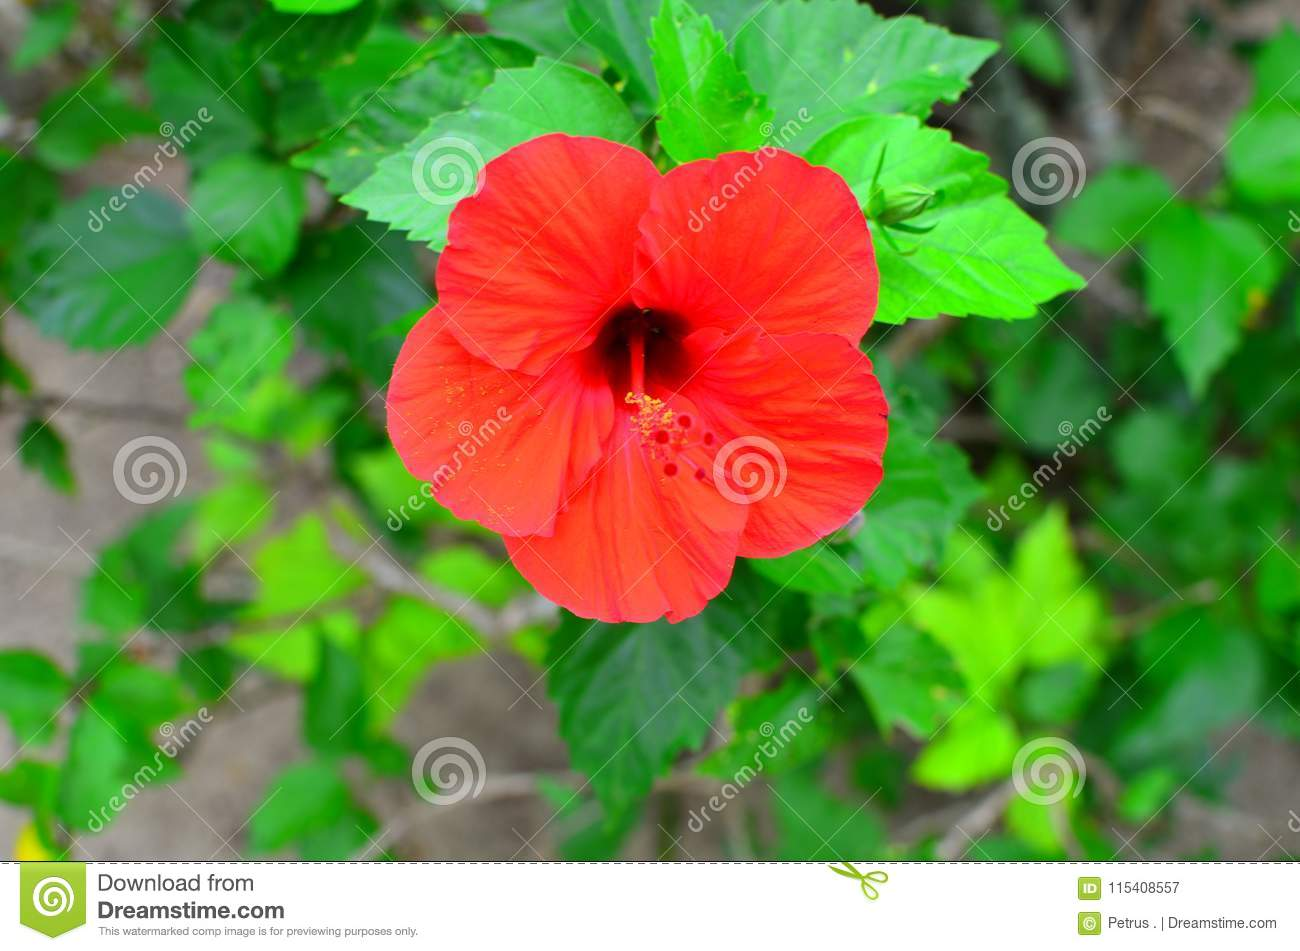 Rarotonga cook islands hibiscus flower stock image image of hibiscus flower in rarotonga cook islands south pacific region extended stamen and anther izmirmasajfo